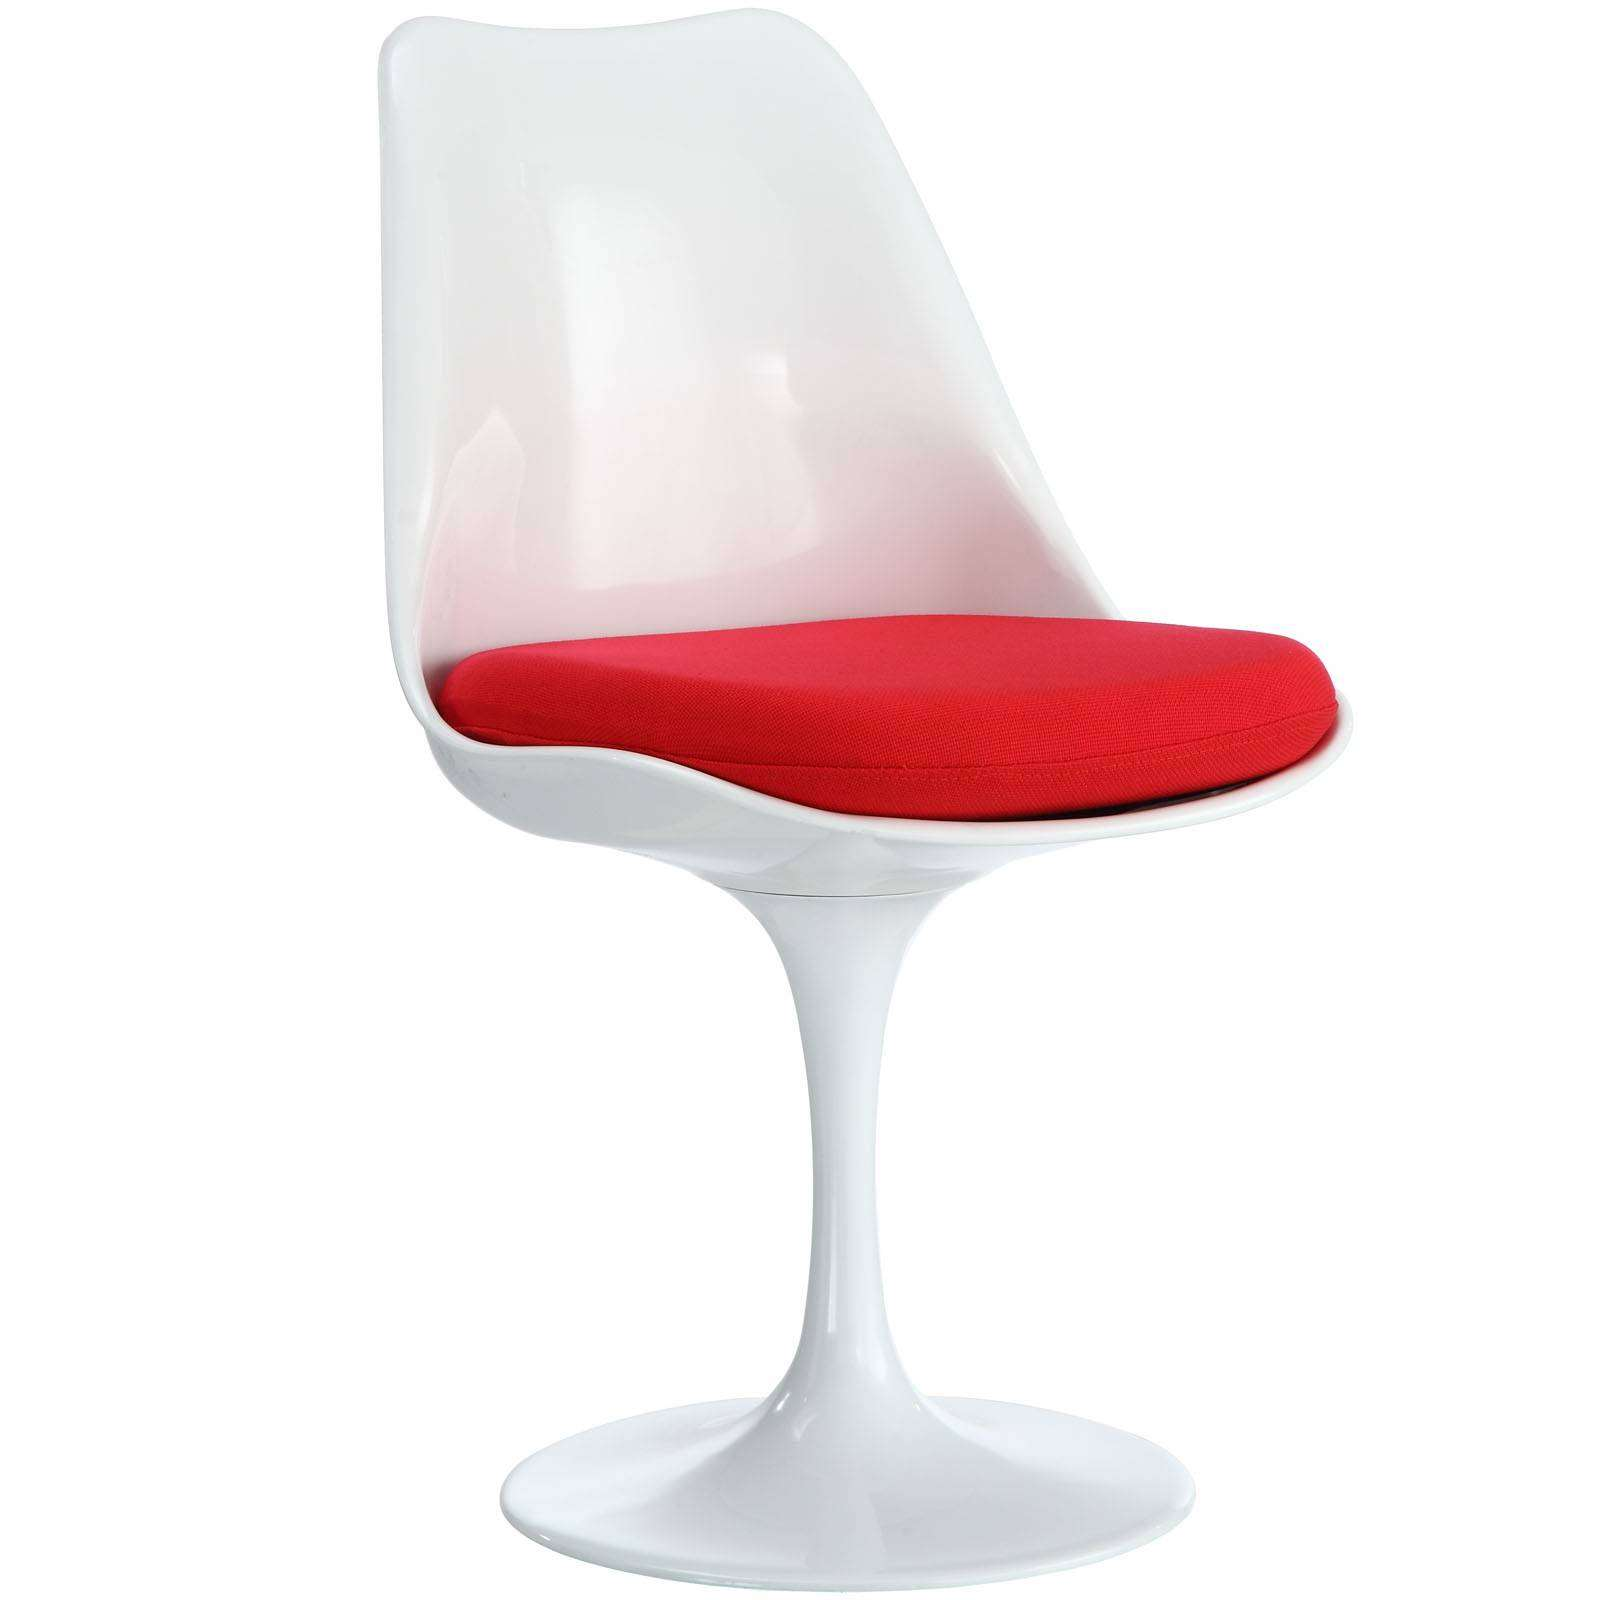 red chaise lounge chair iron throne office cover eero saarinen style tulip side